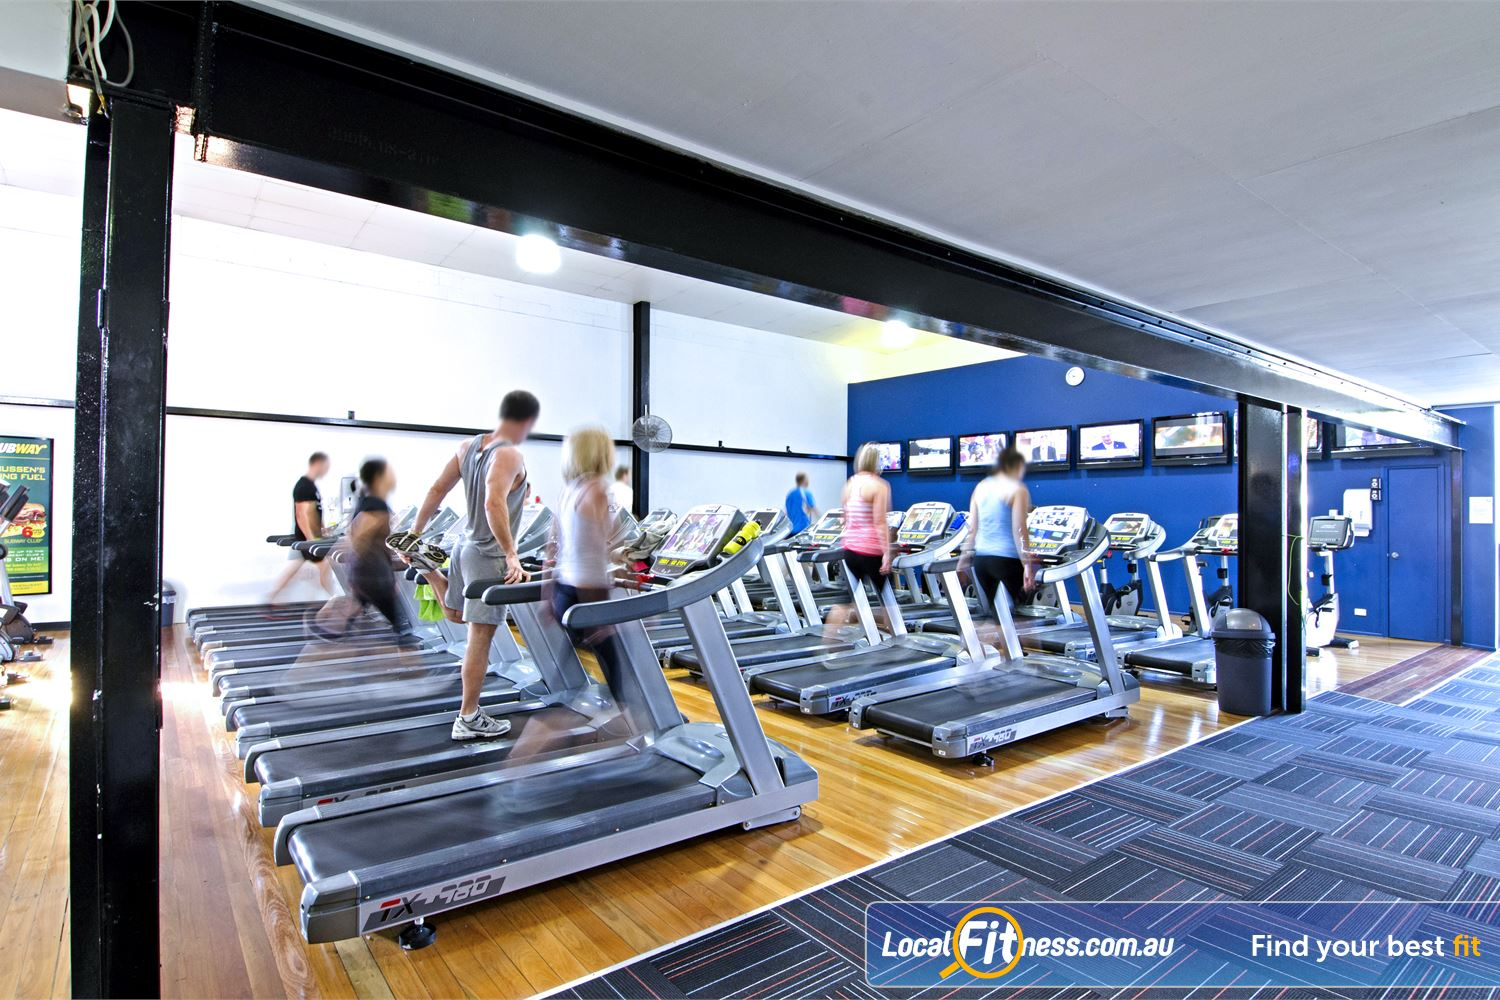 Goodlife Health Clubs Graceville Our Graceville features rows and rows of cardio.